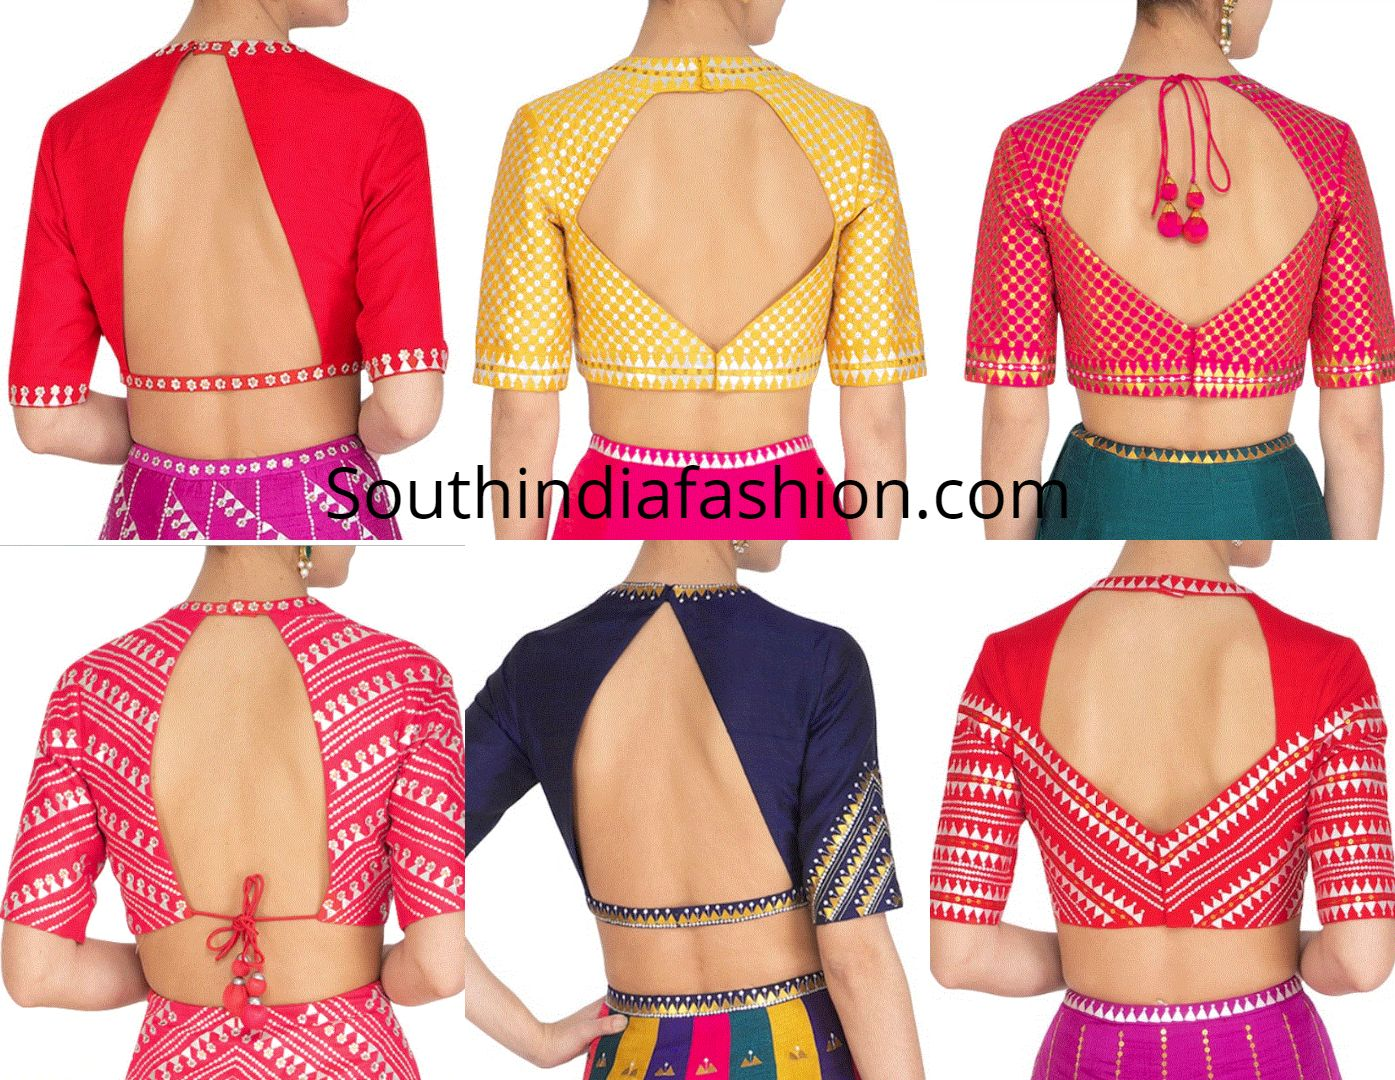 Back Neck Designs For High Neck Saree Blouses South India Fashion Blouse Designs High Neck Stylish Blouse Design High Neck Saree Blouse